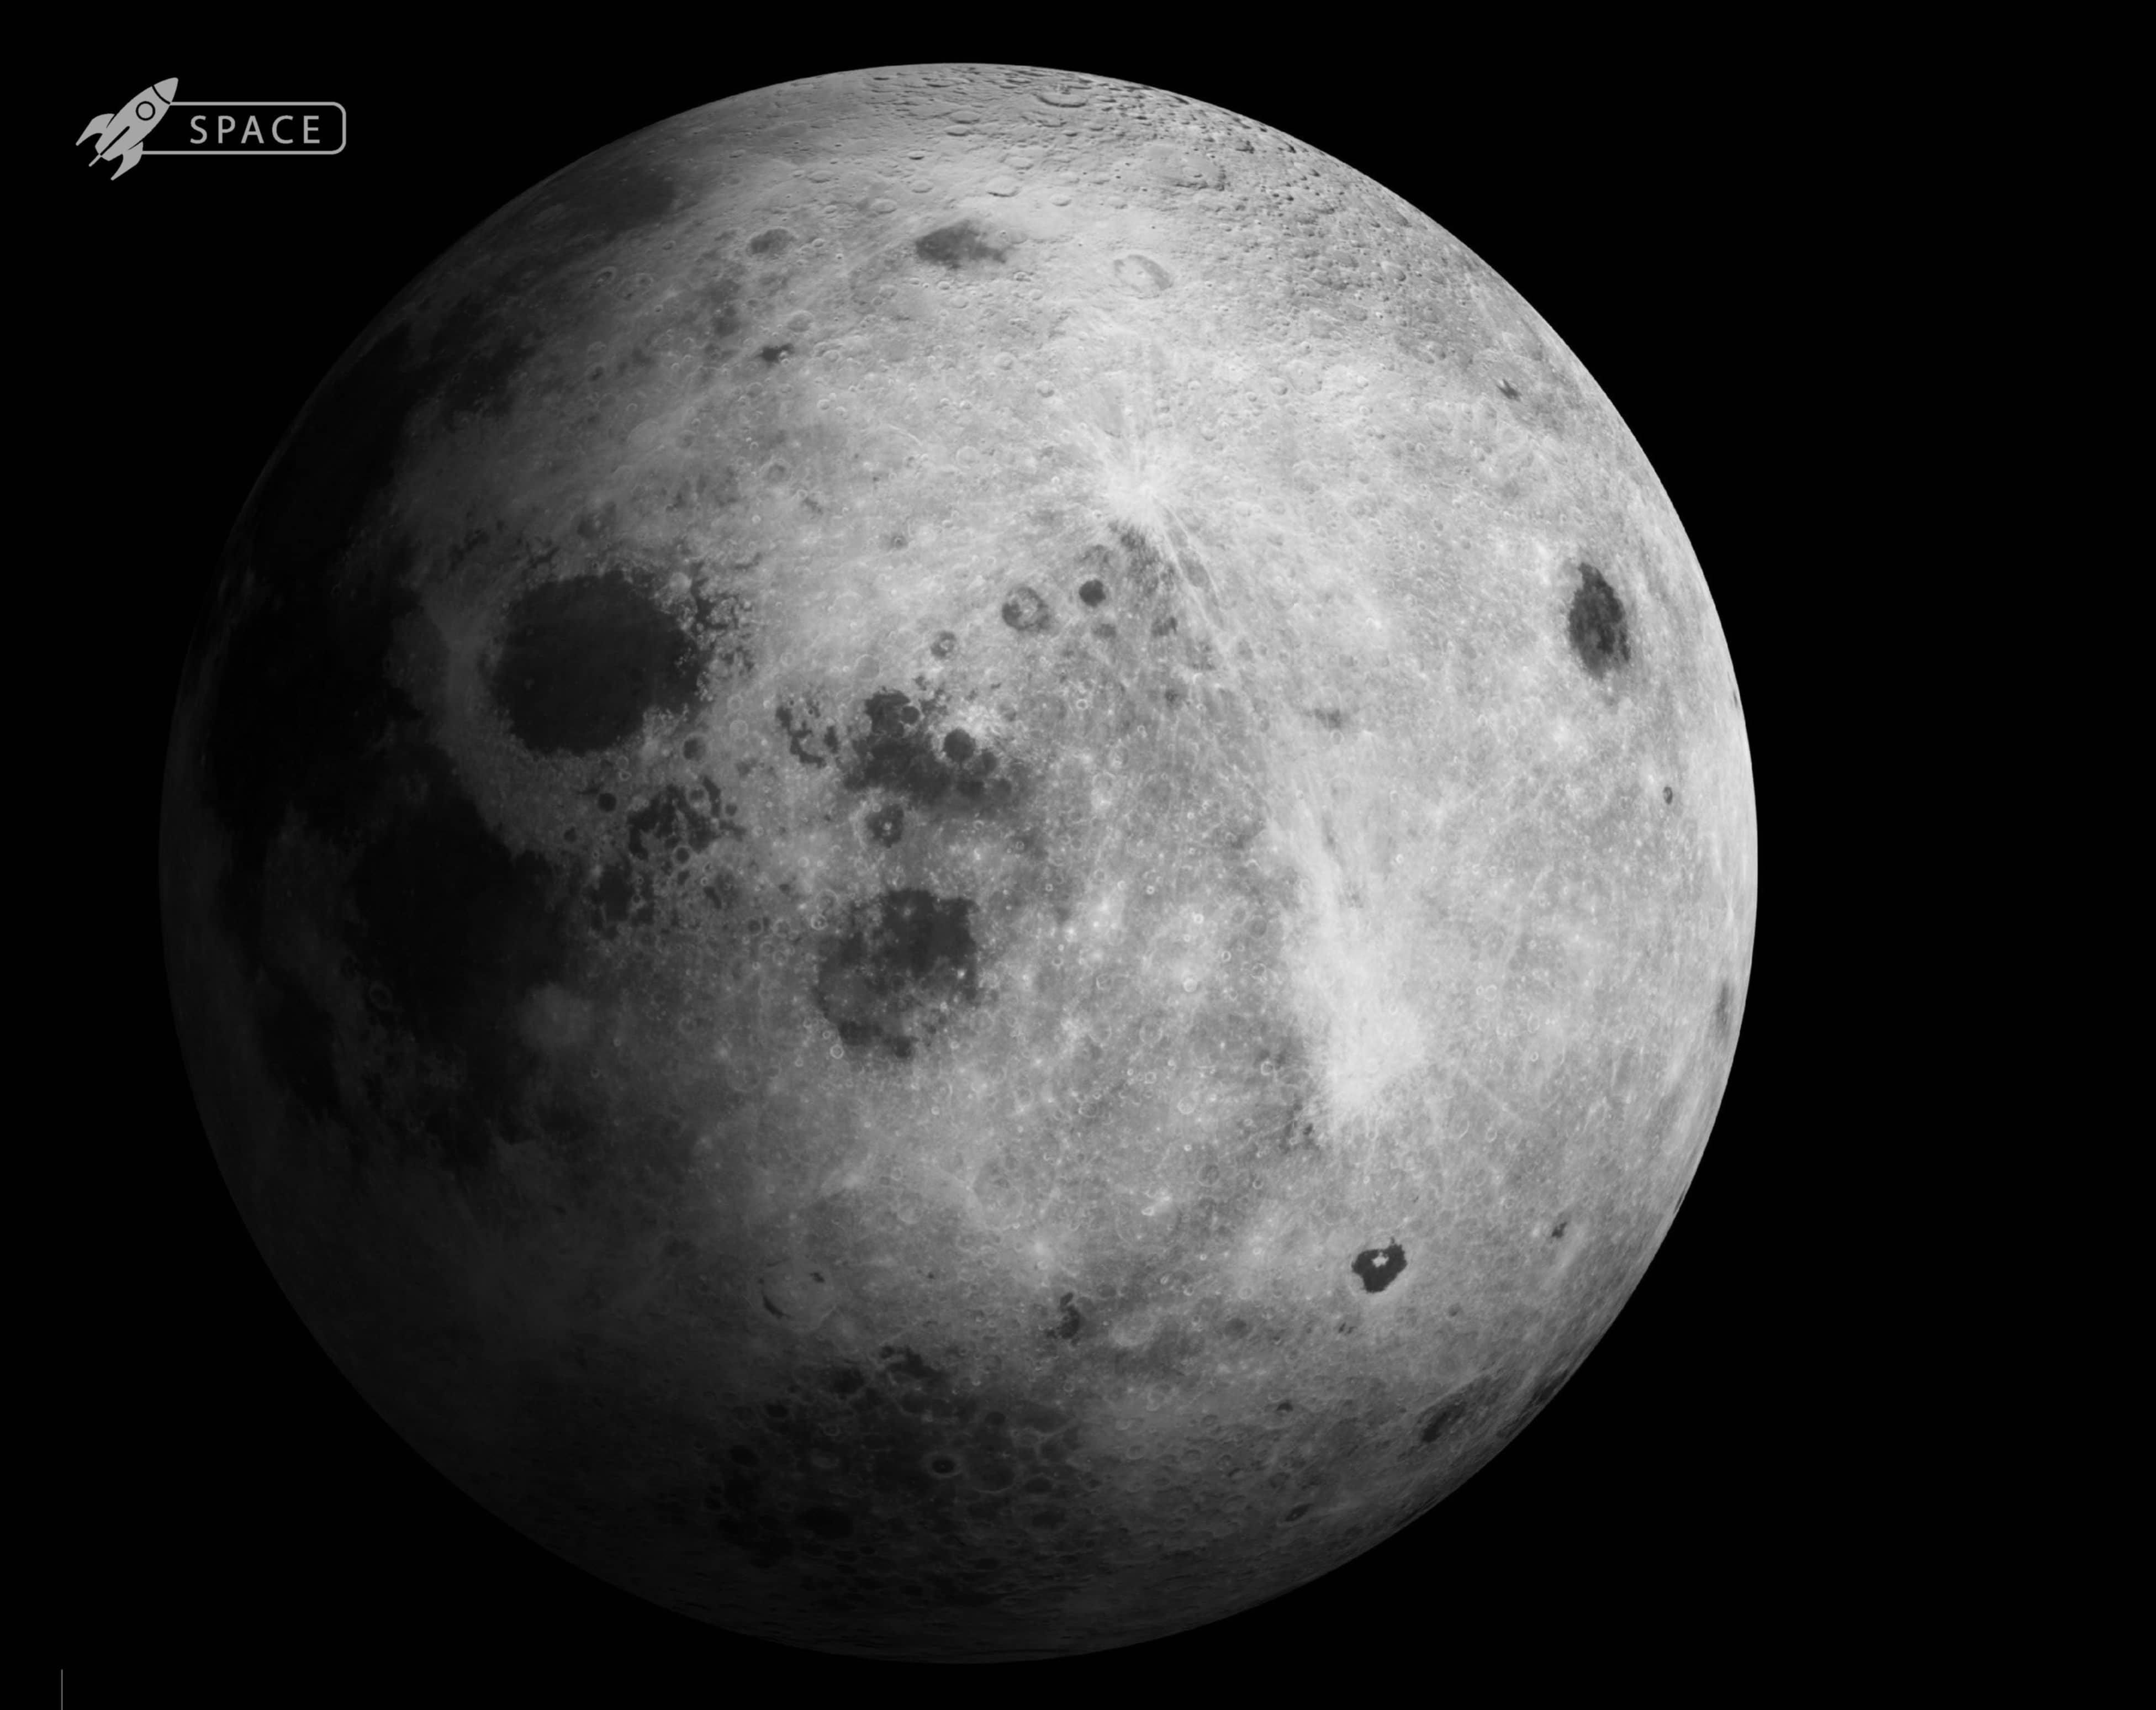 Europeans Contemplating Moon Mission By 2025